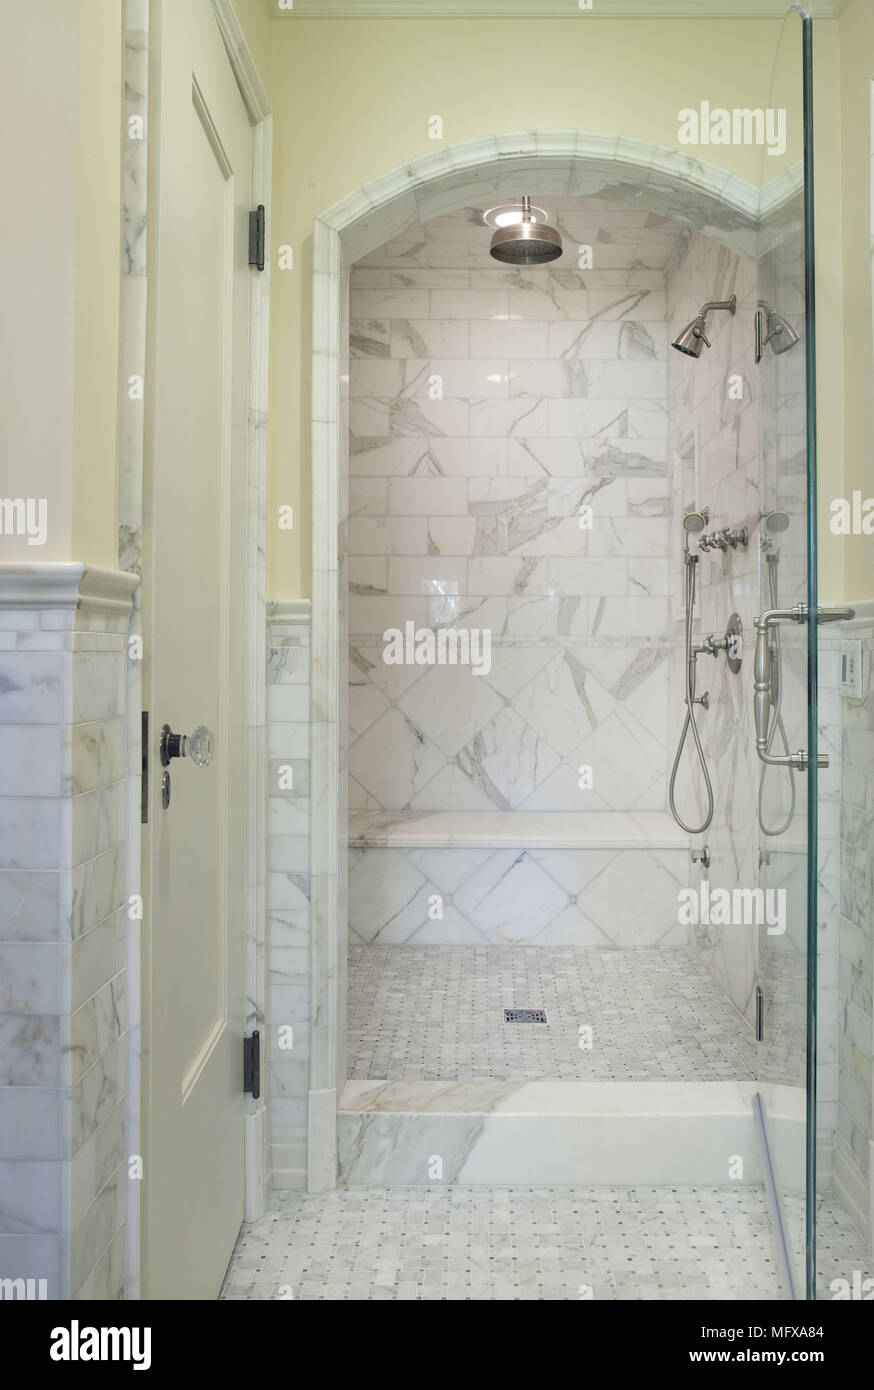 Shower cubicle with glass door in traditional style bathroom Stock ...